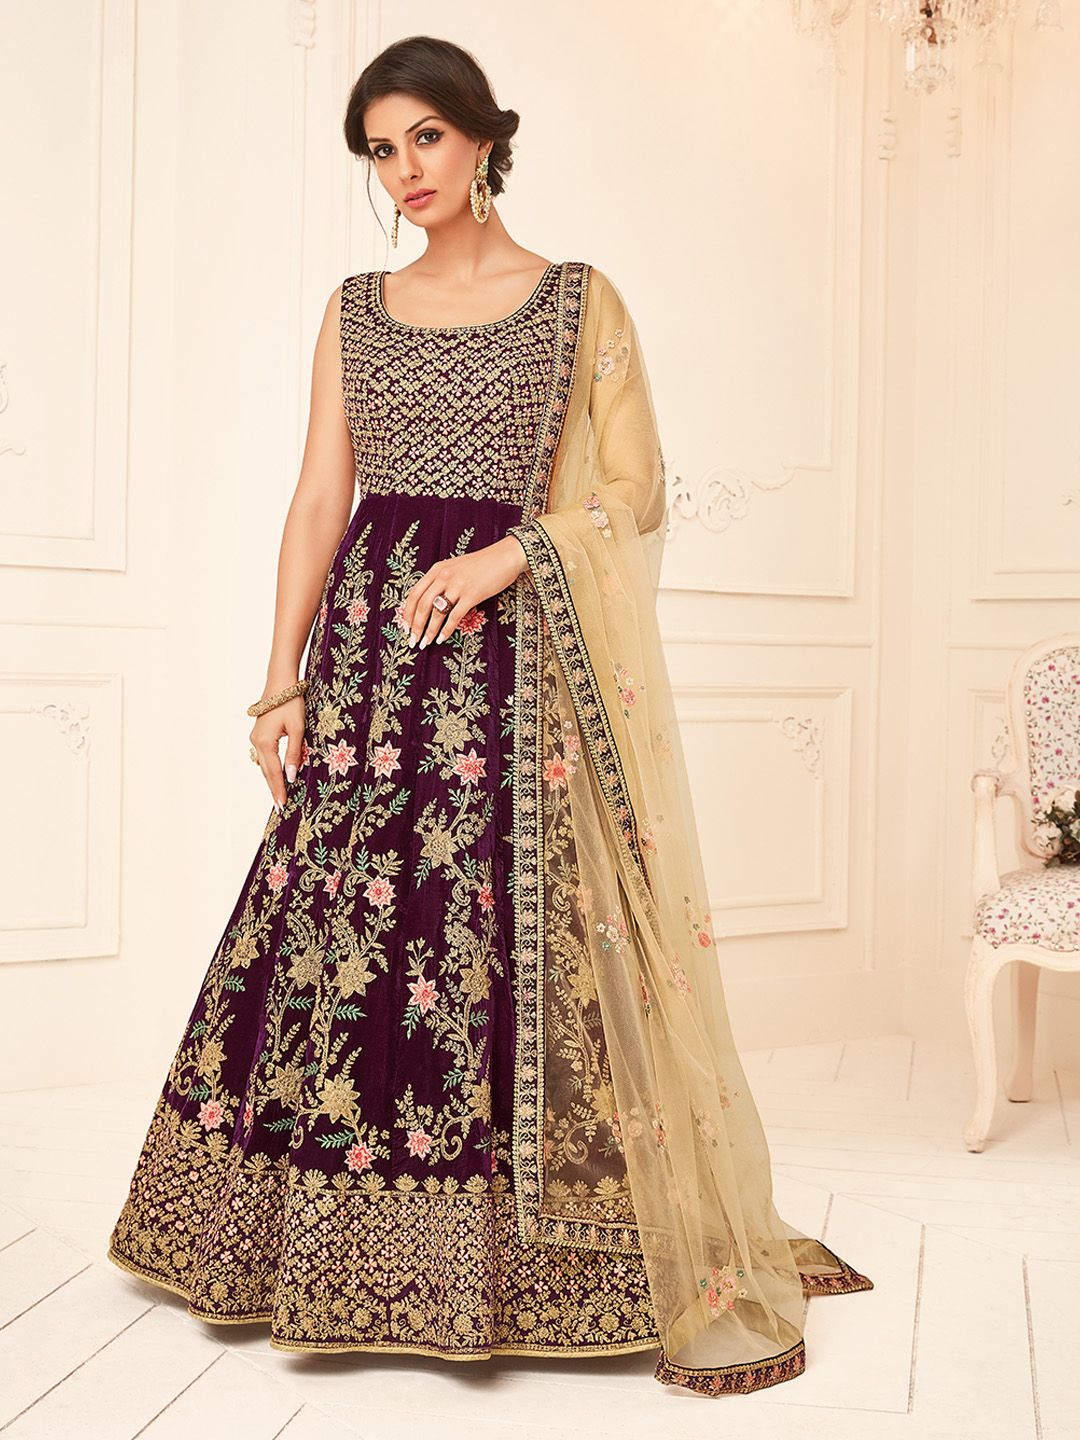 db75f4c862 Buy salwar kameez online at best prices from India. Online shopping latest  anarkali salwar suits, straight cut suits, Punjabi suits and more readymade  ...